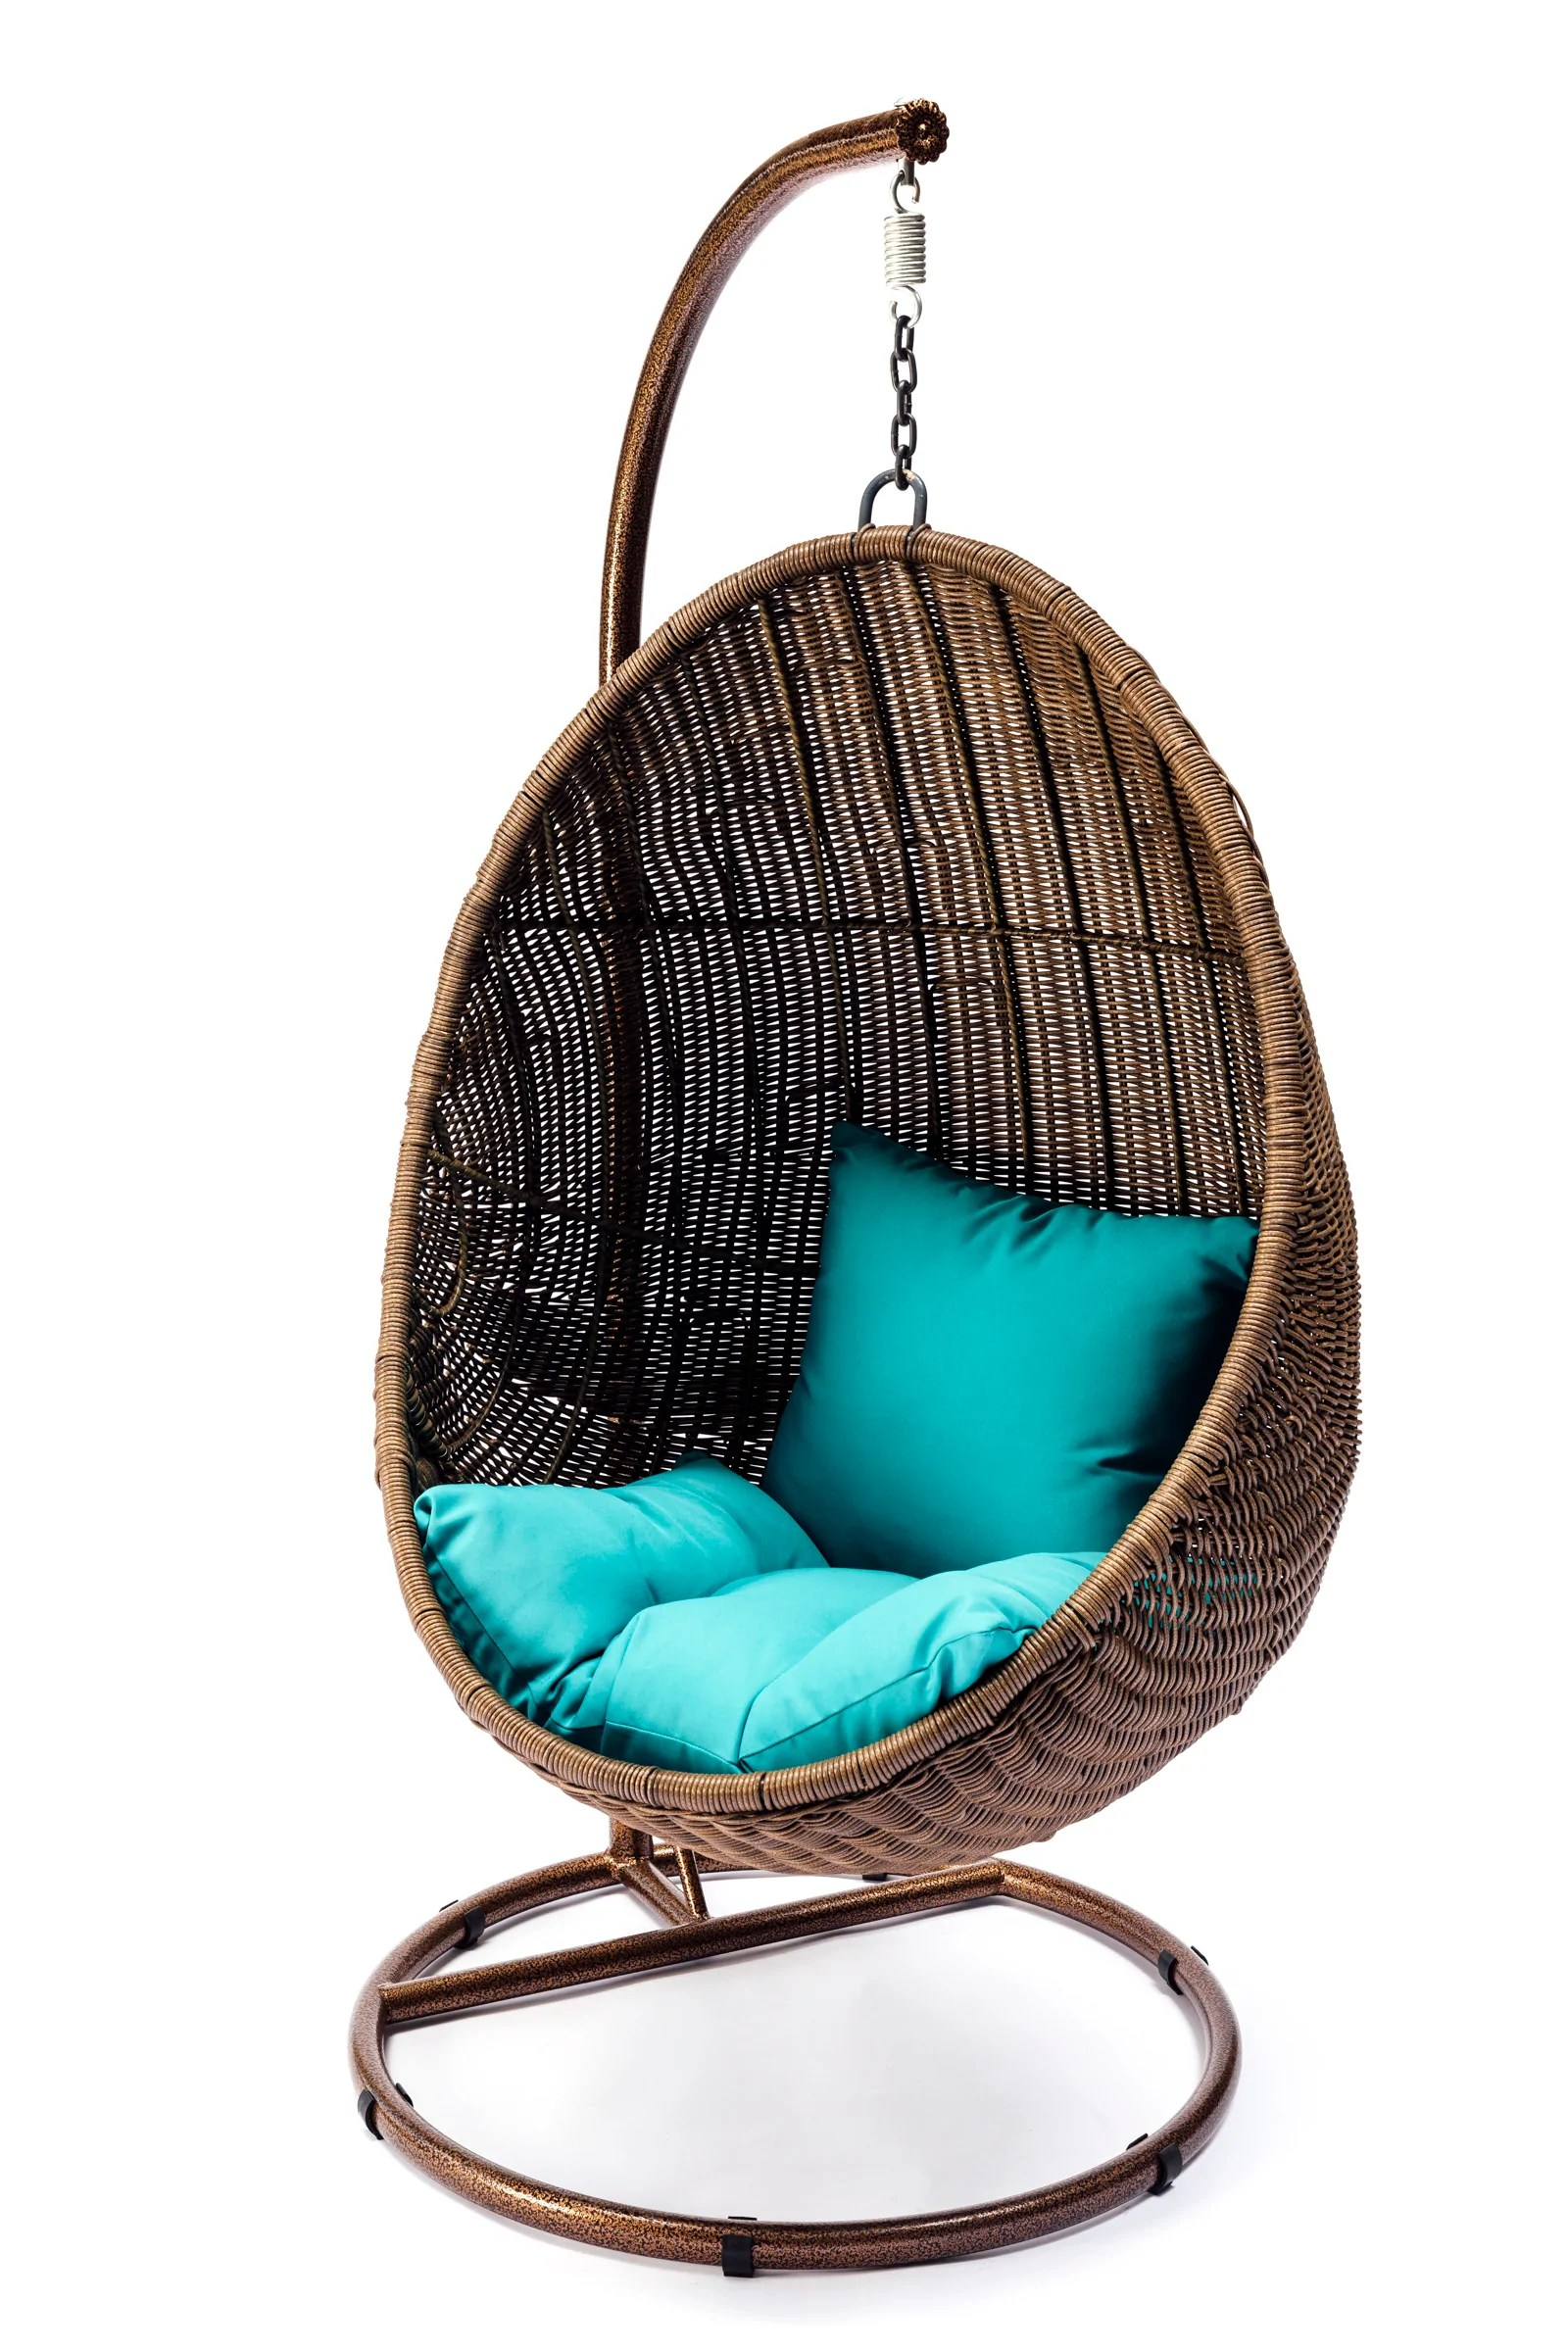 Rattan Egg Chairs Ansan Outdoor Furniture Wicker Egg Swing Chair